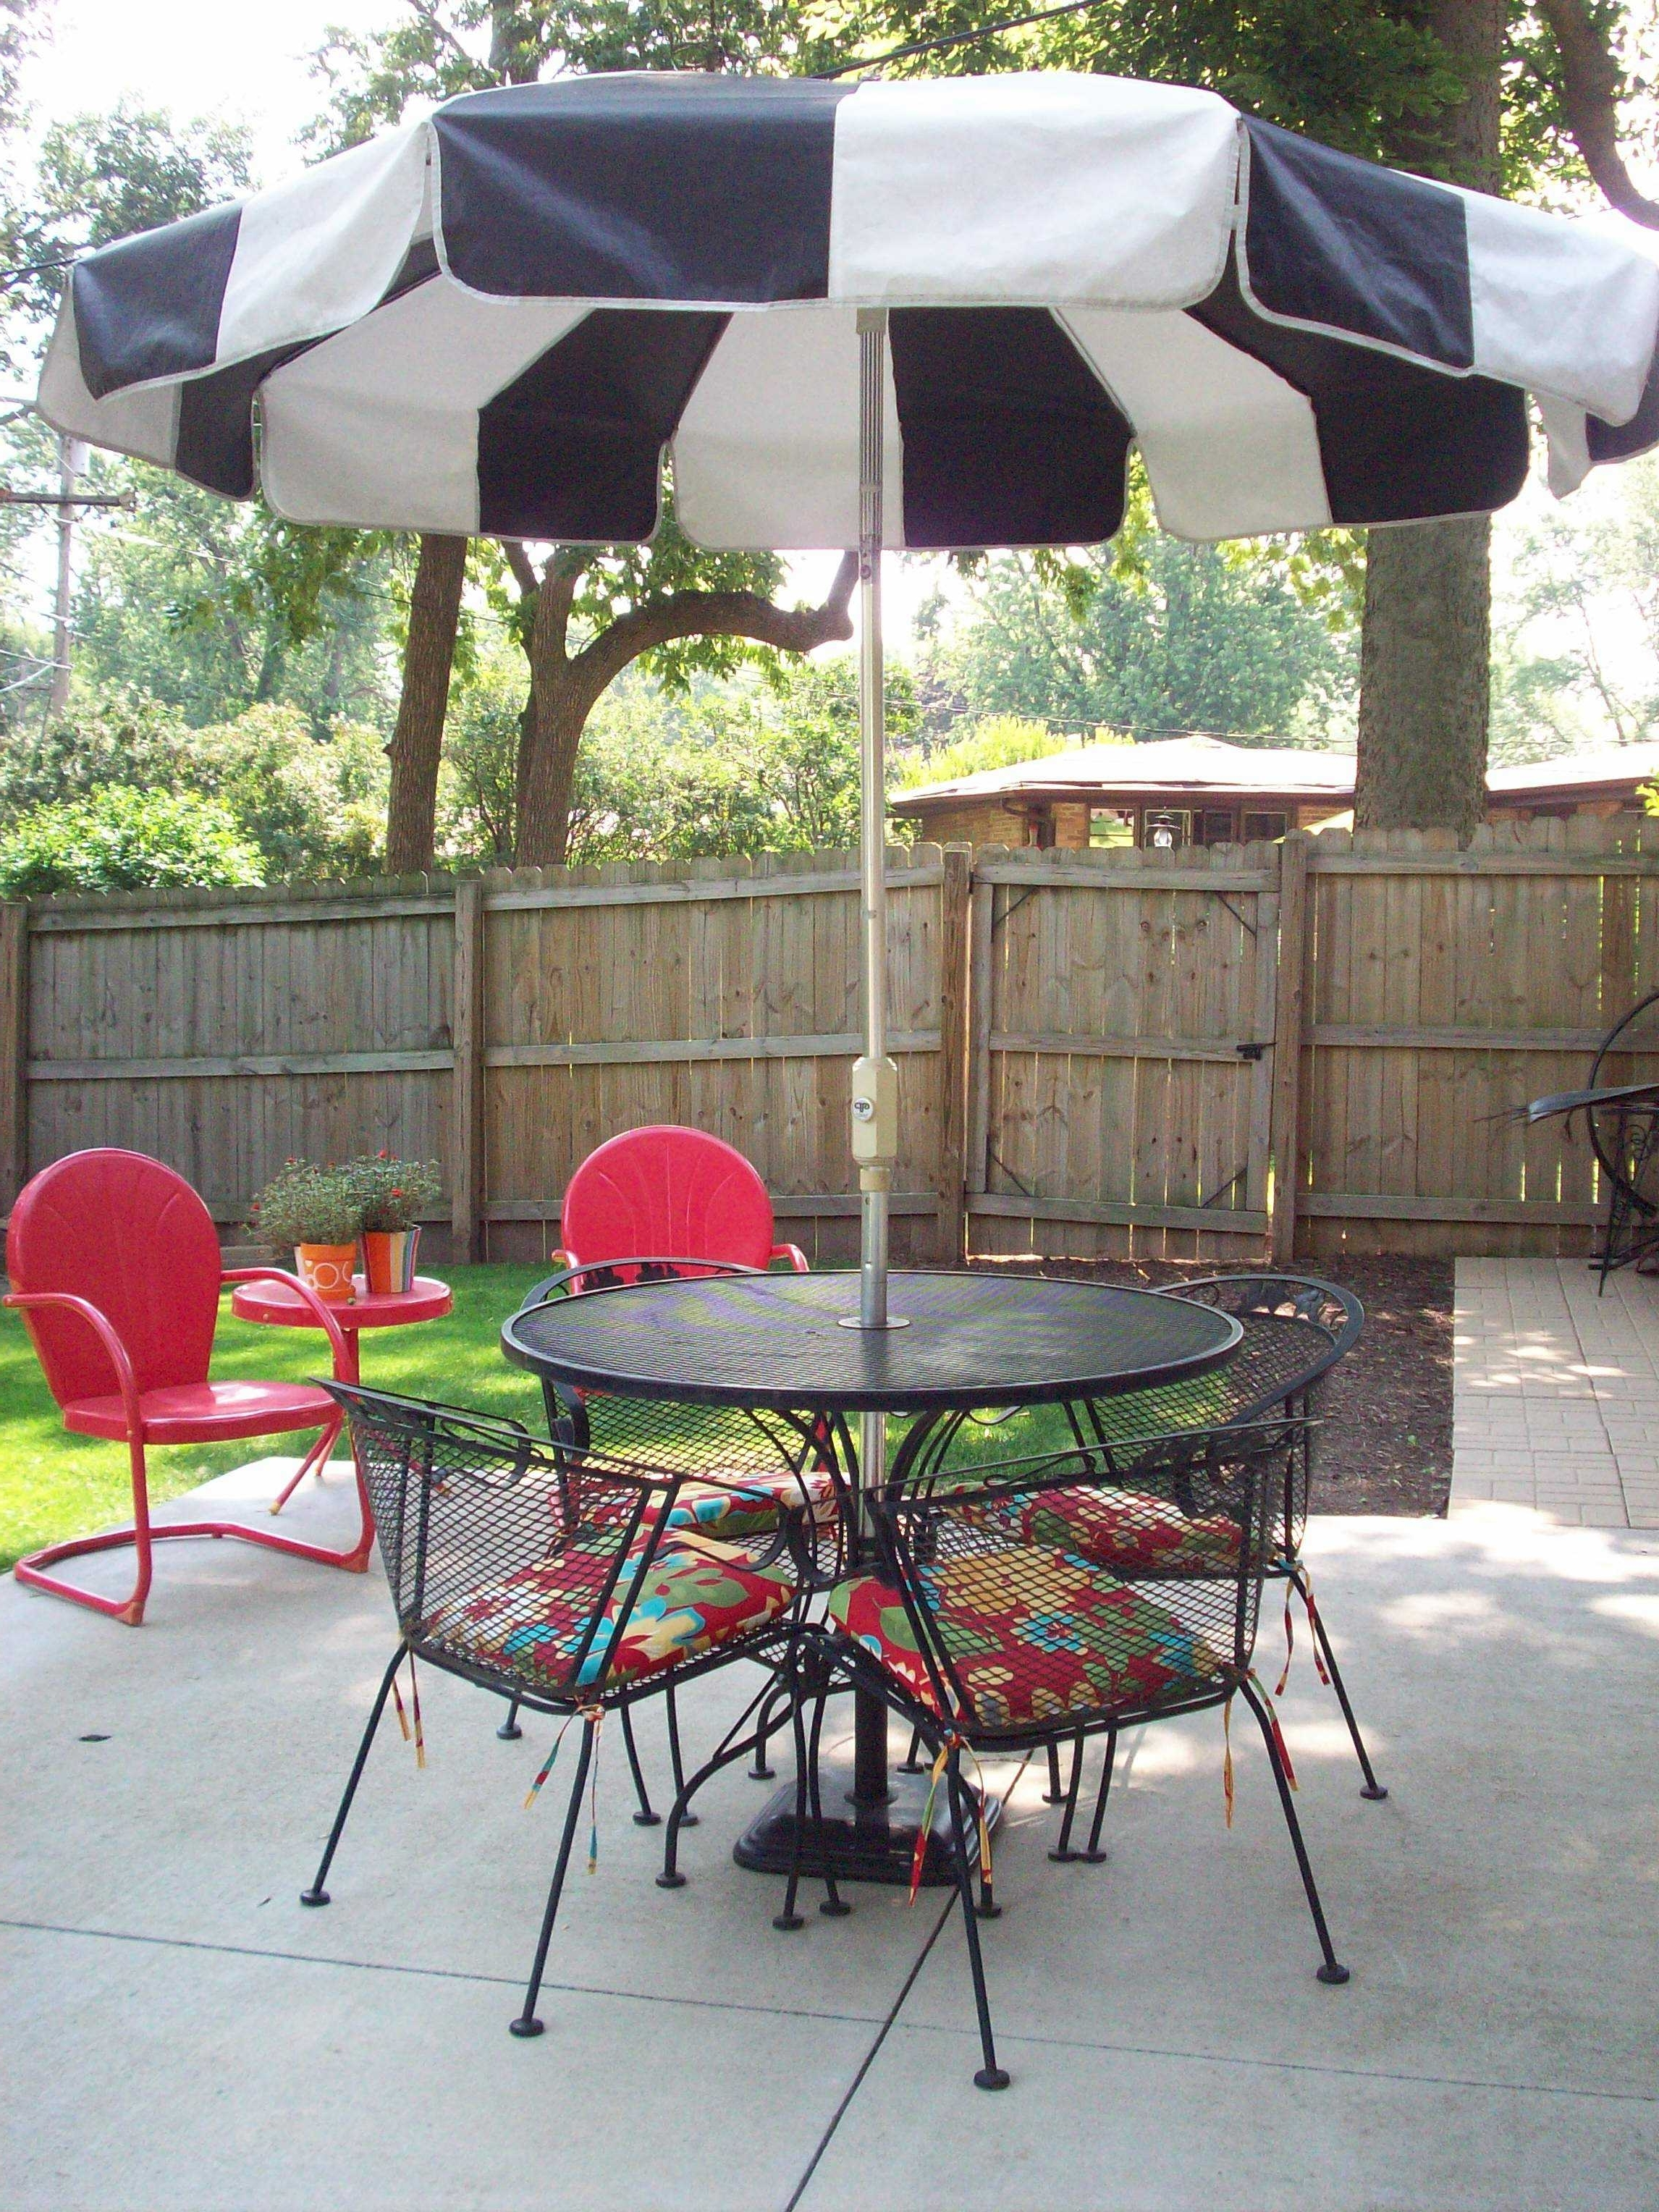 Fashionable Charming Small Patio Table With Umbrella Ideas Also Set Tables That Pertaining To Small Patio Tables With Umbrellas (View 3 of 20)